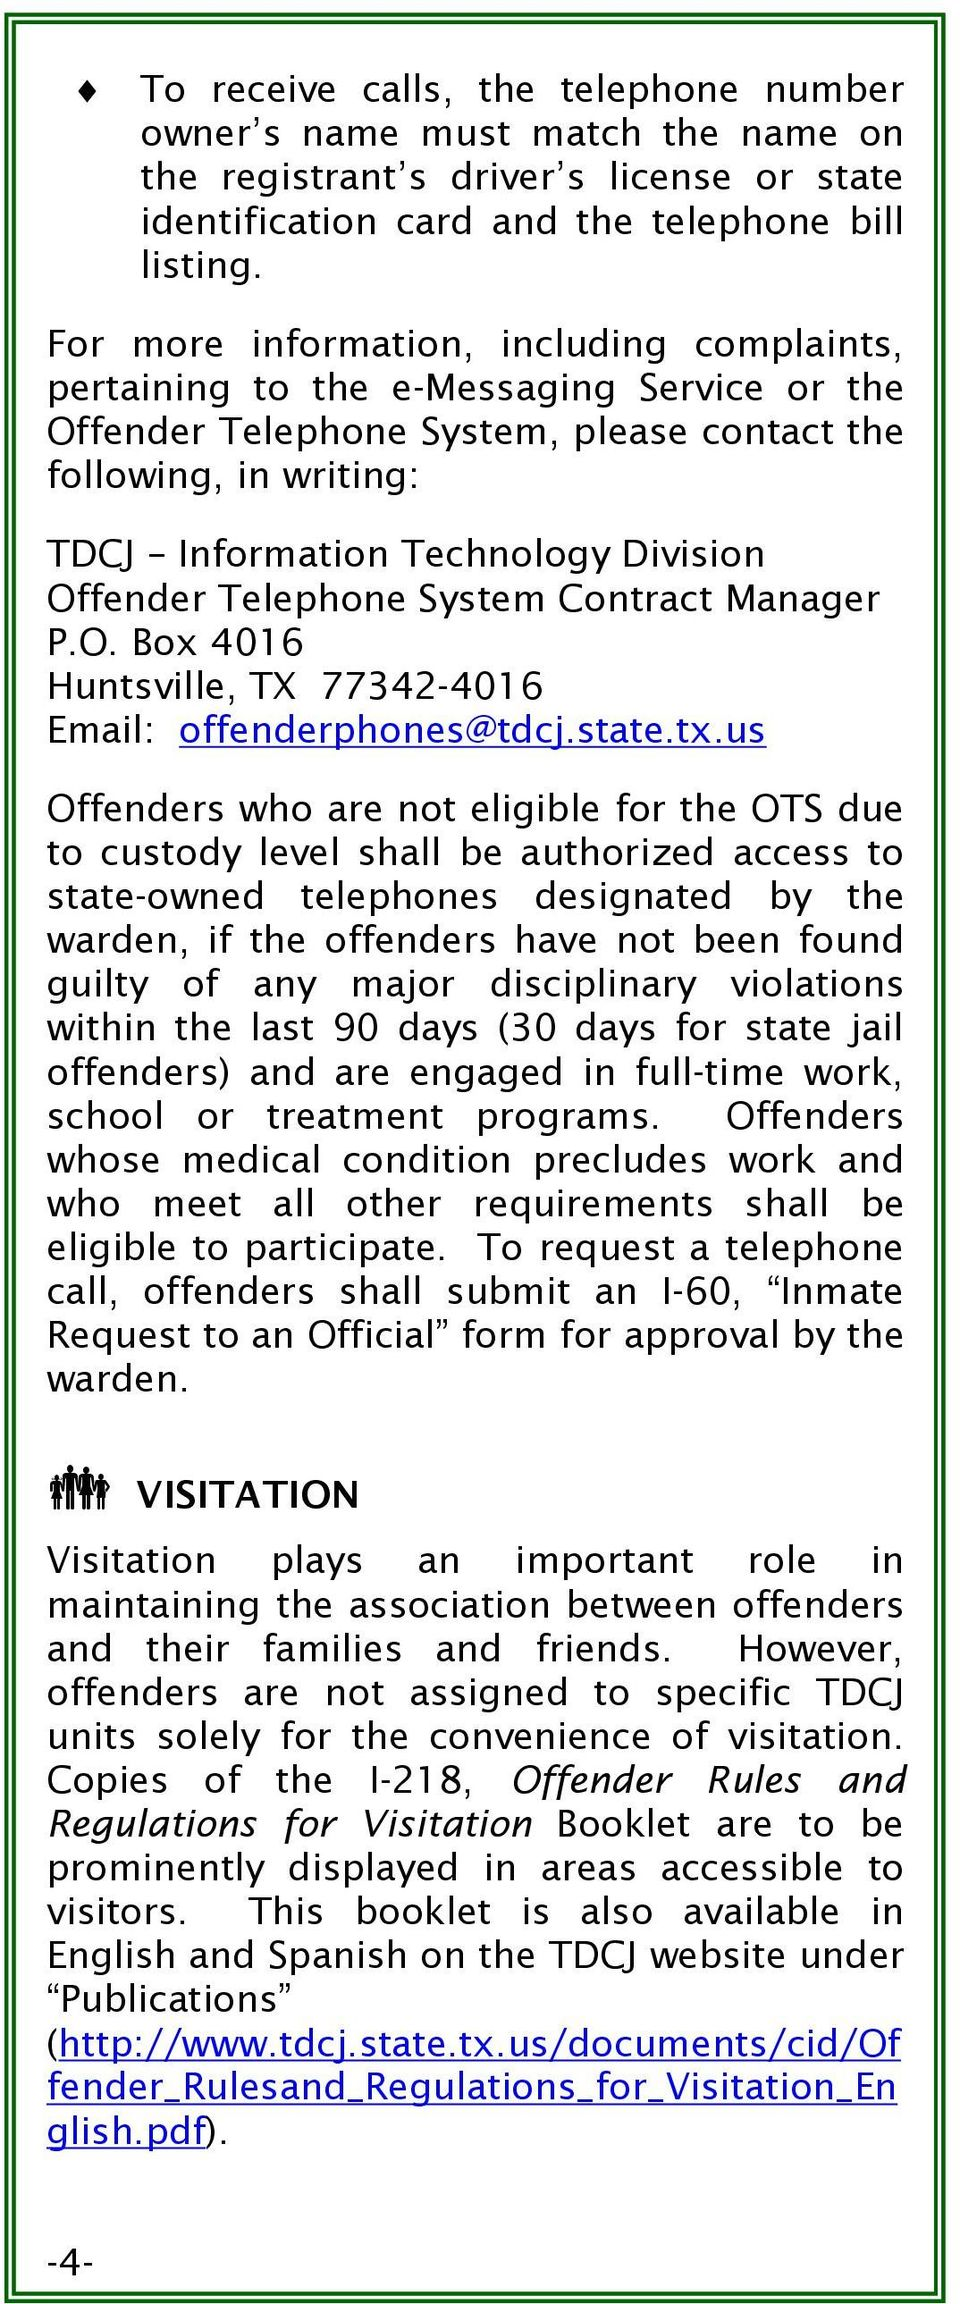 Offender Telephone System Contract Manager P.O. Box 4016 Huntsville, TX 77342-4016 Email: offenderphones@tdcj.state.tx.